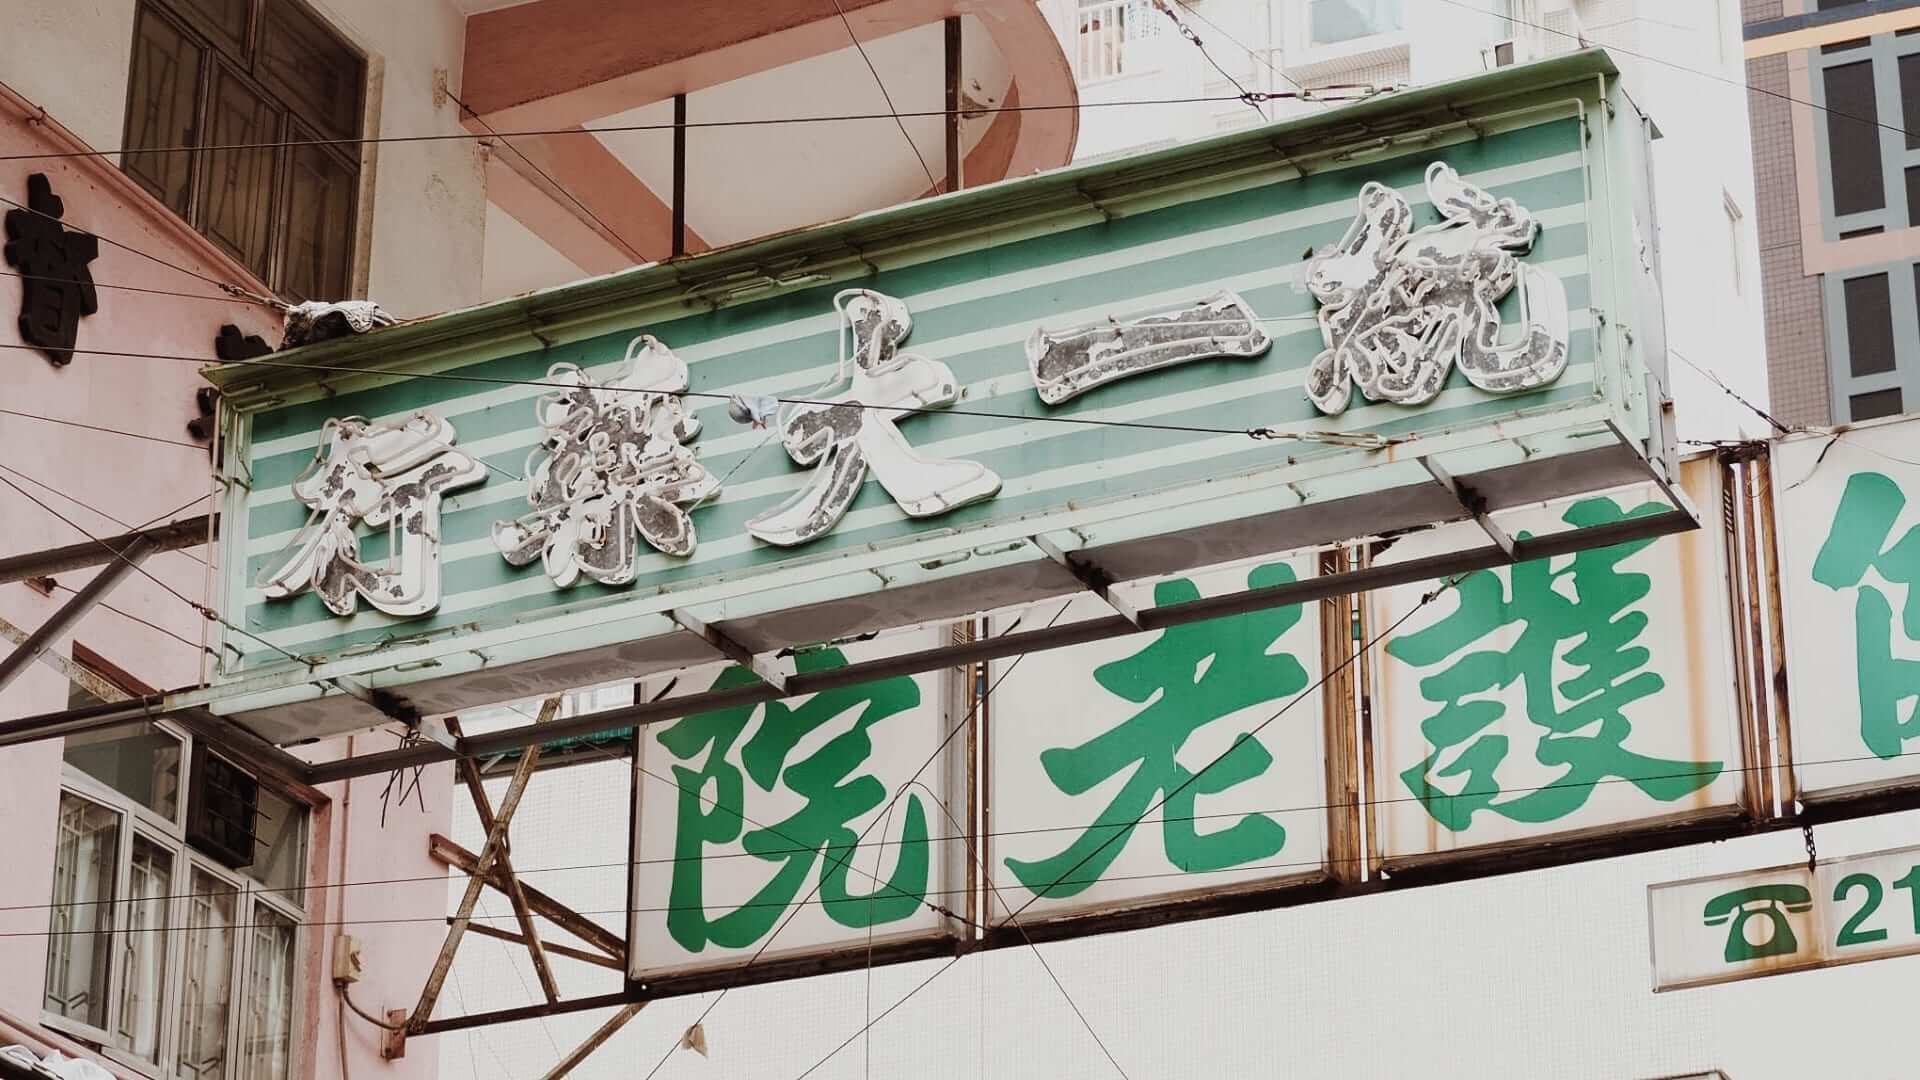 Green and white Chinese characters on a building in China.